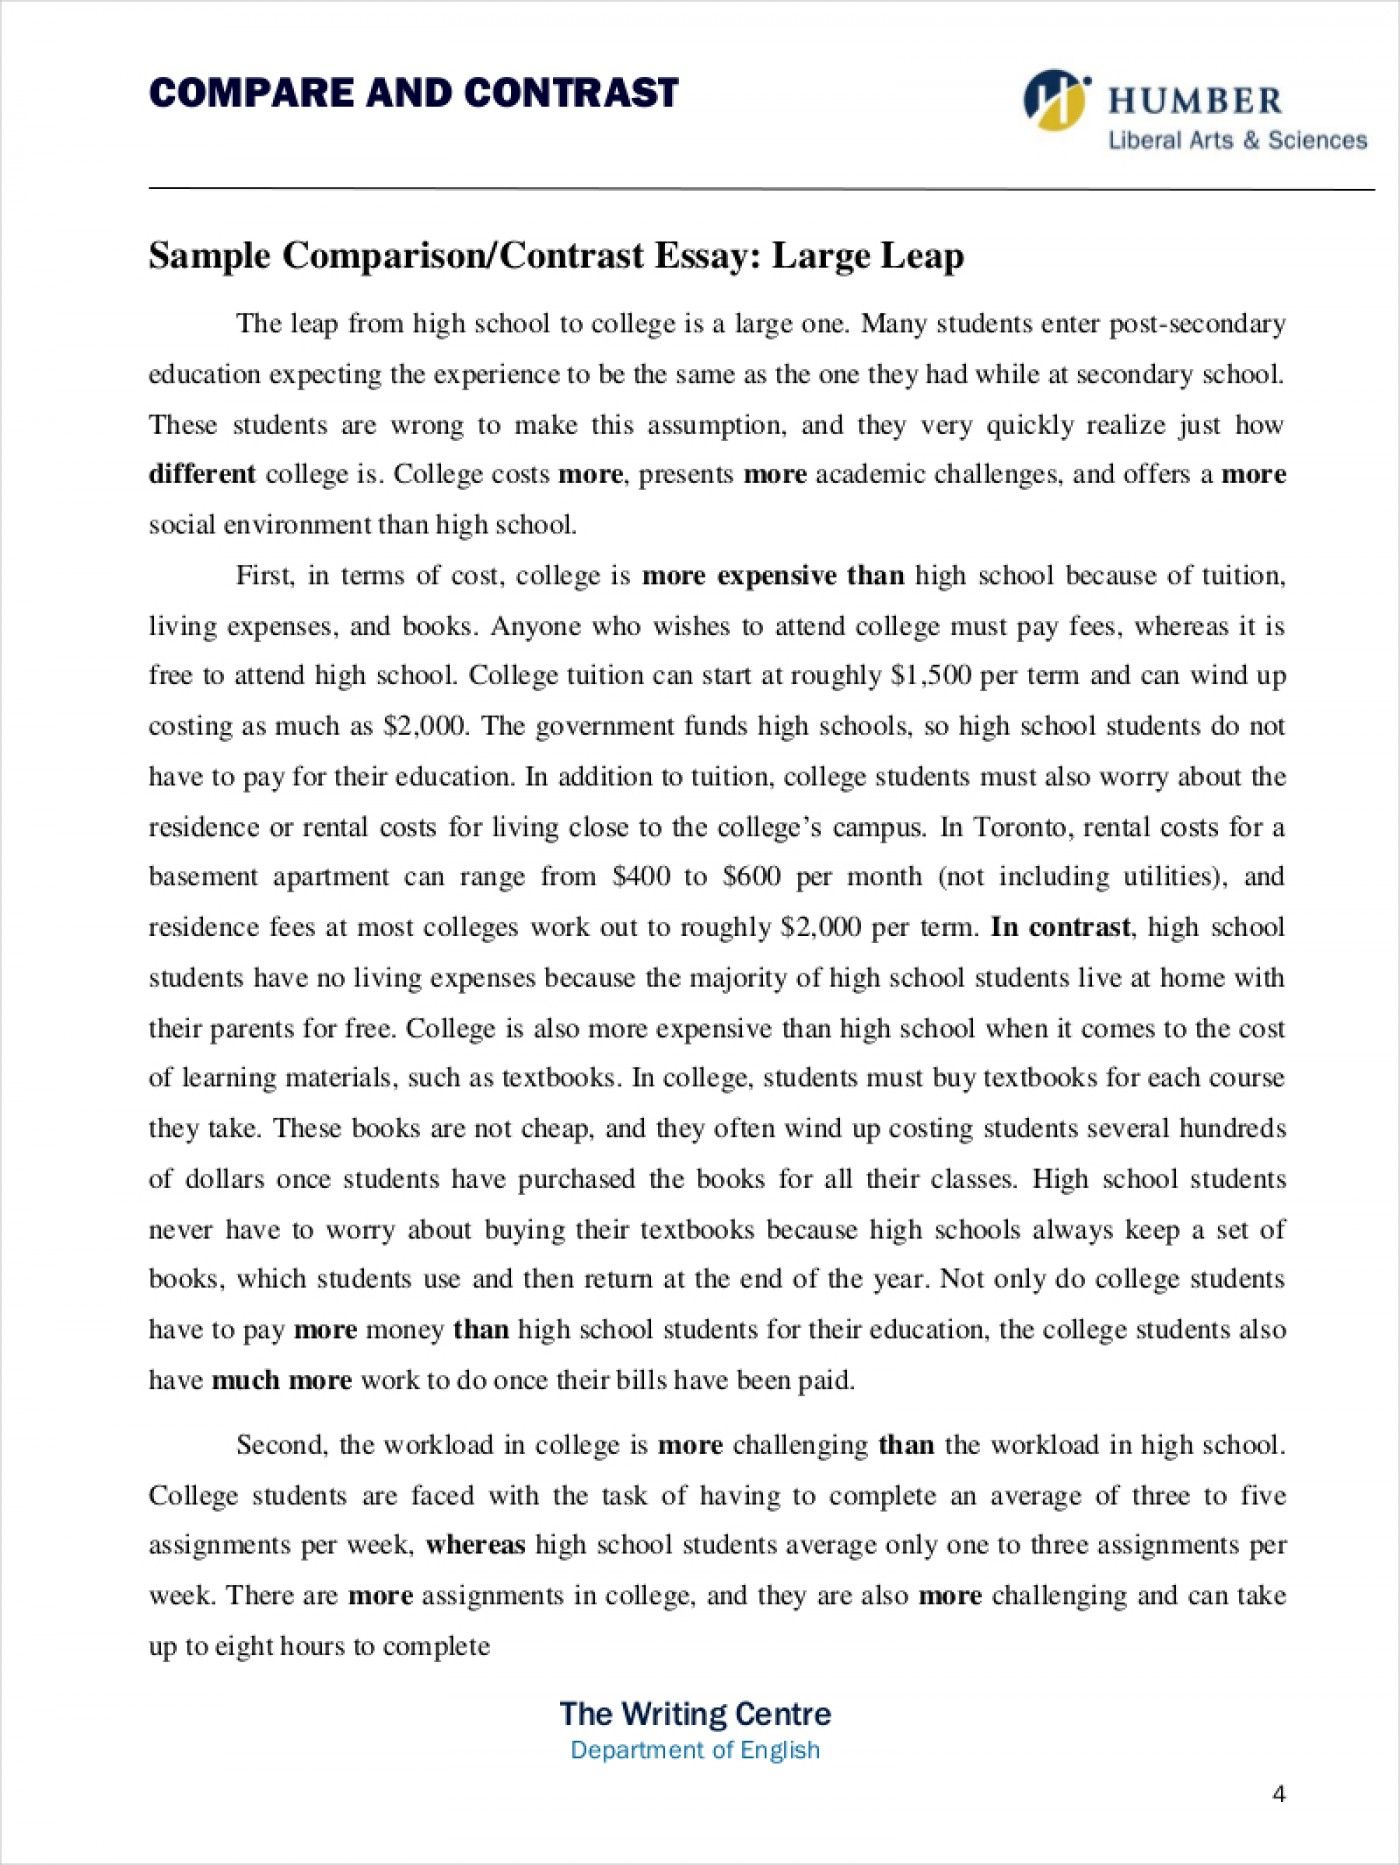 014 How To Write Compare And Contrast Essay Example Comparative Samples Free Pdf Format Download Throughout Examples Comparison Thesis Coles Thecolossus Co Within Ex Outstanding A Block Introduction Paragraph 1400